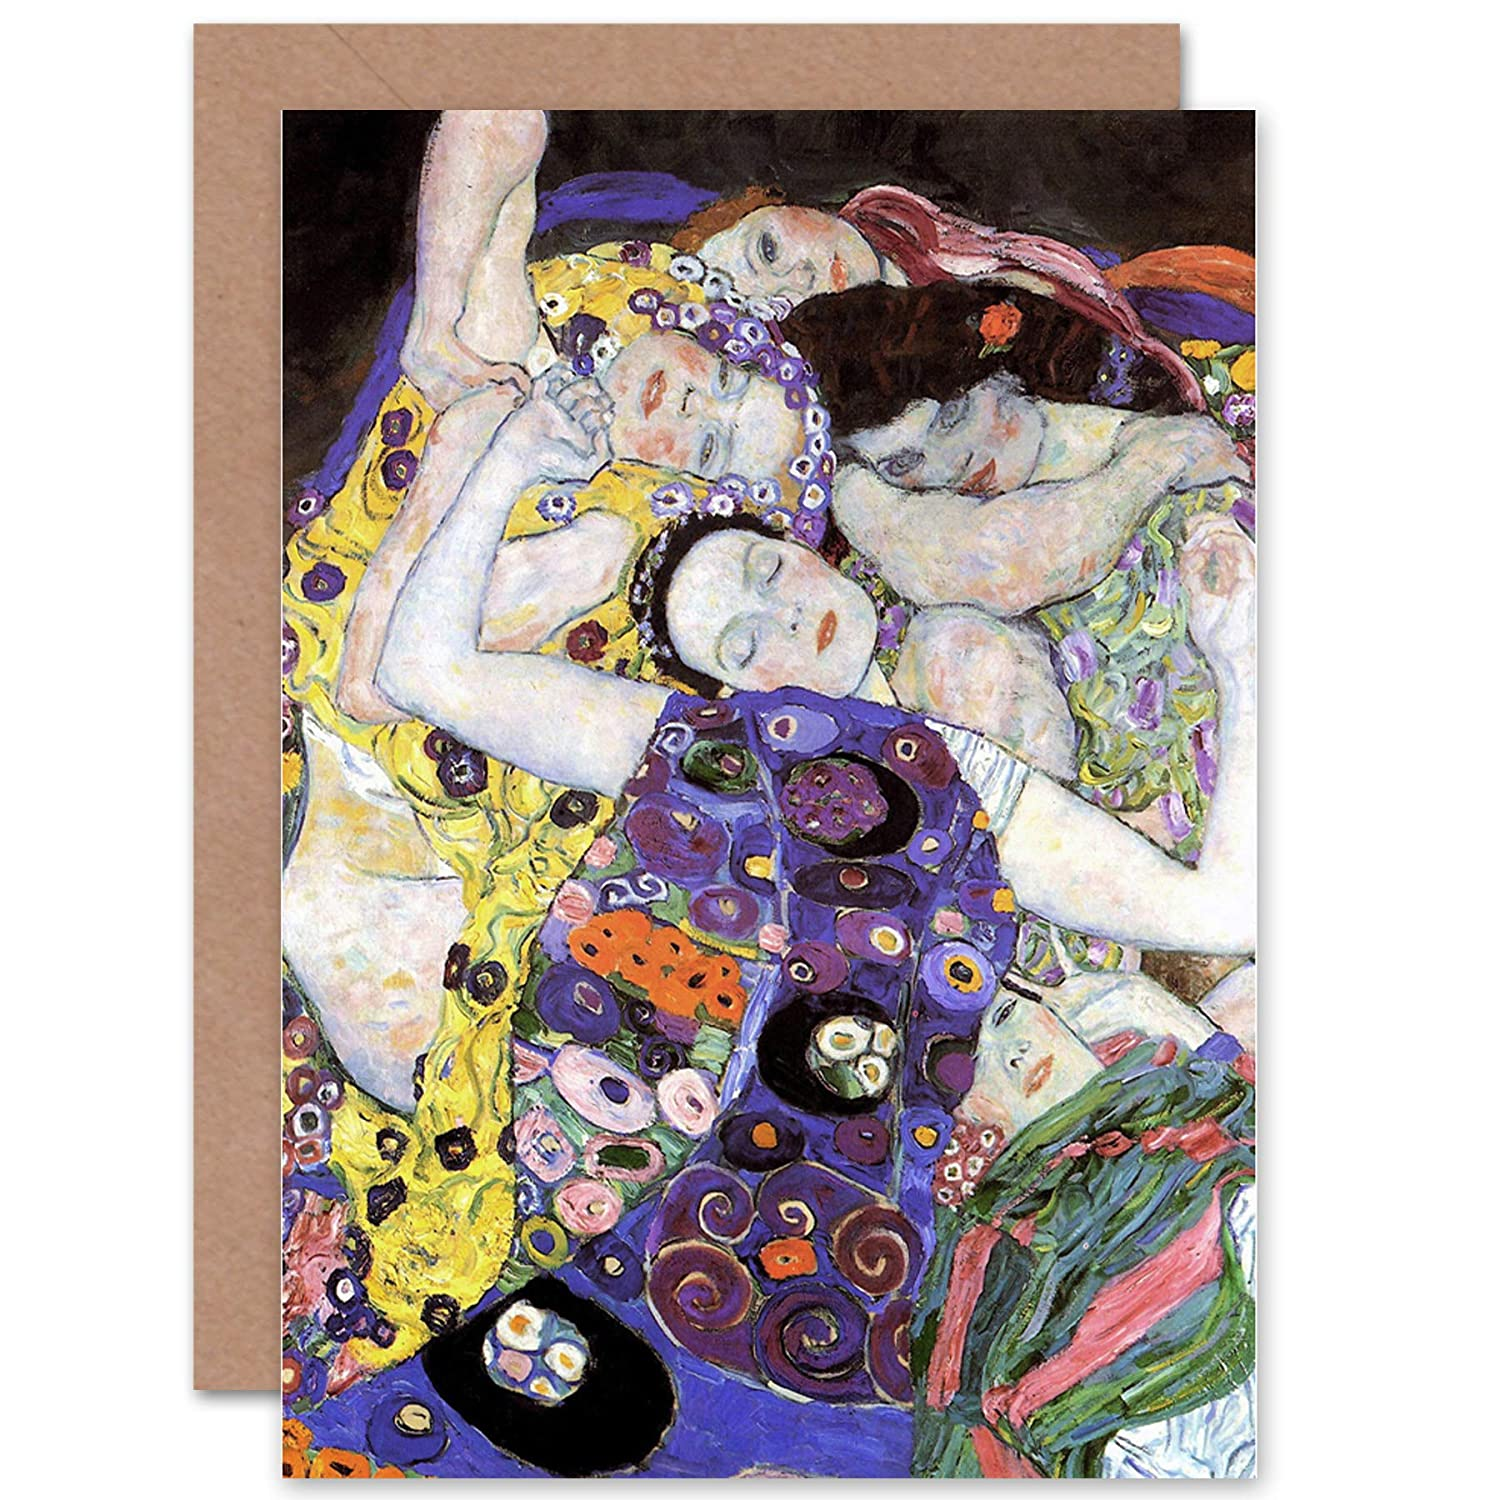 Wee Blue Coo LTD GUSTAV KLIMT PORTRAIT OF ADELE BLOCH BAUER BLANK GREETINGS CARD Ritratto Pubblicità SALUTI